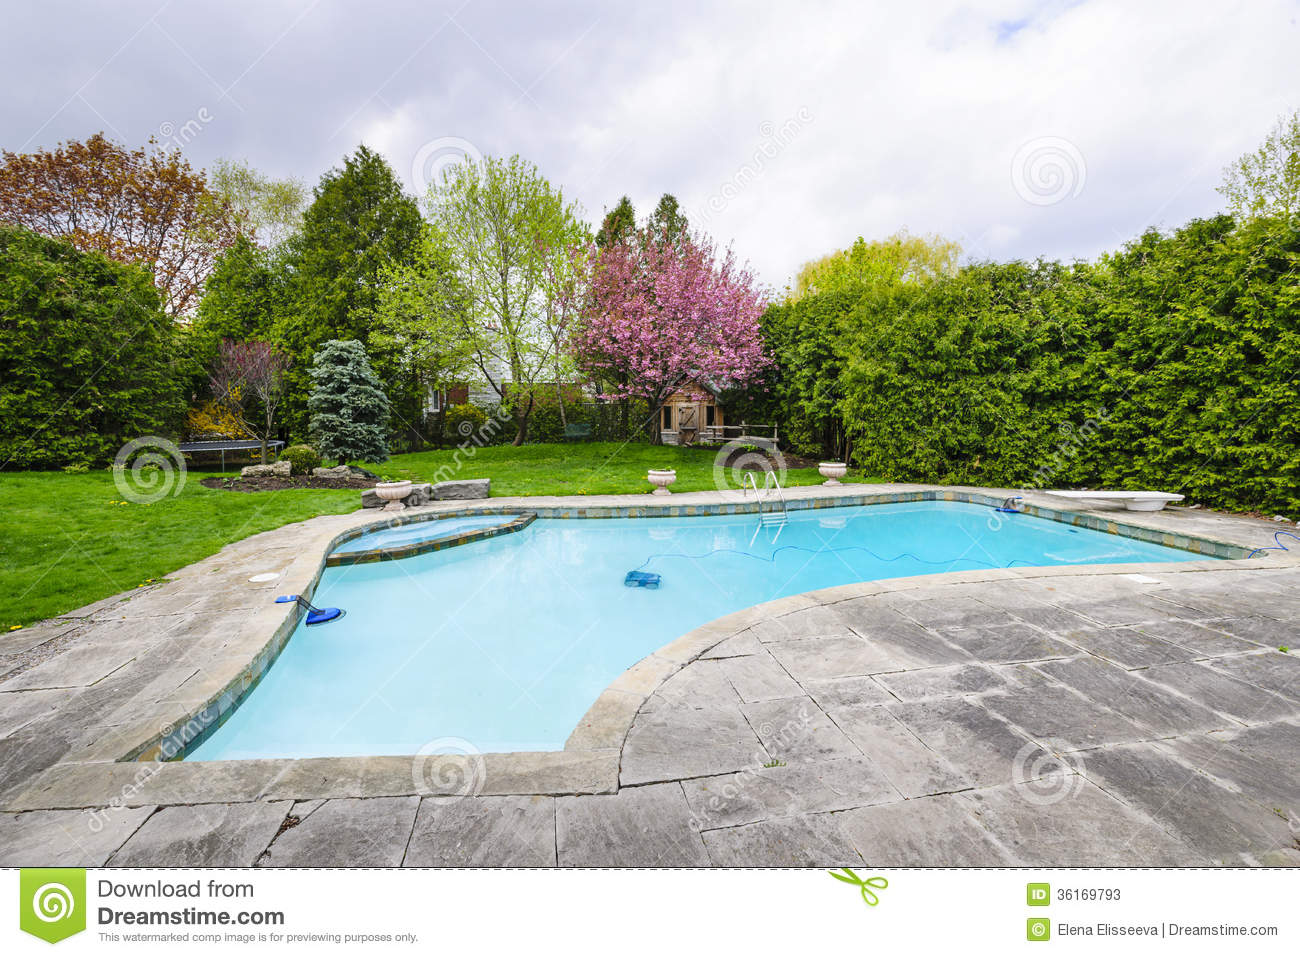 swimming pool in backyard stock image image of outdoors 36169793. Black Bedroom Furniture Sets. Home Design Ideas